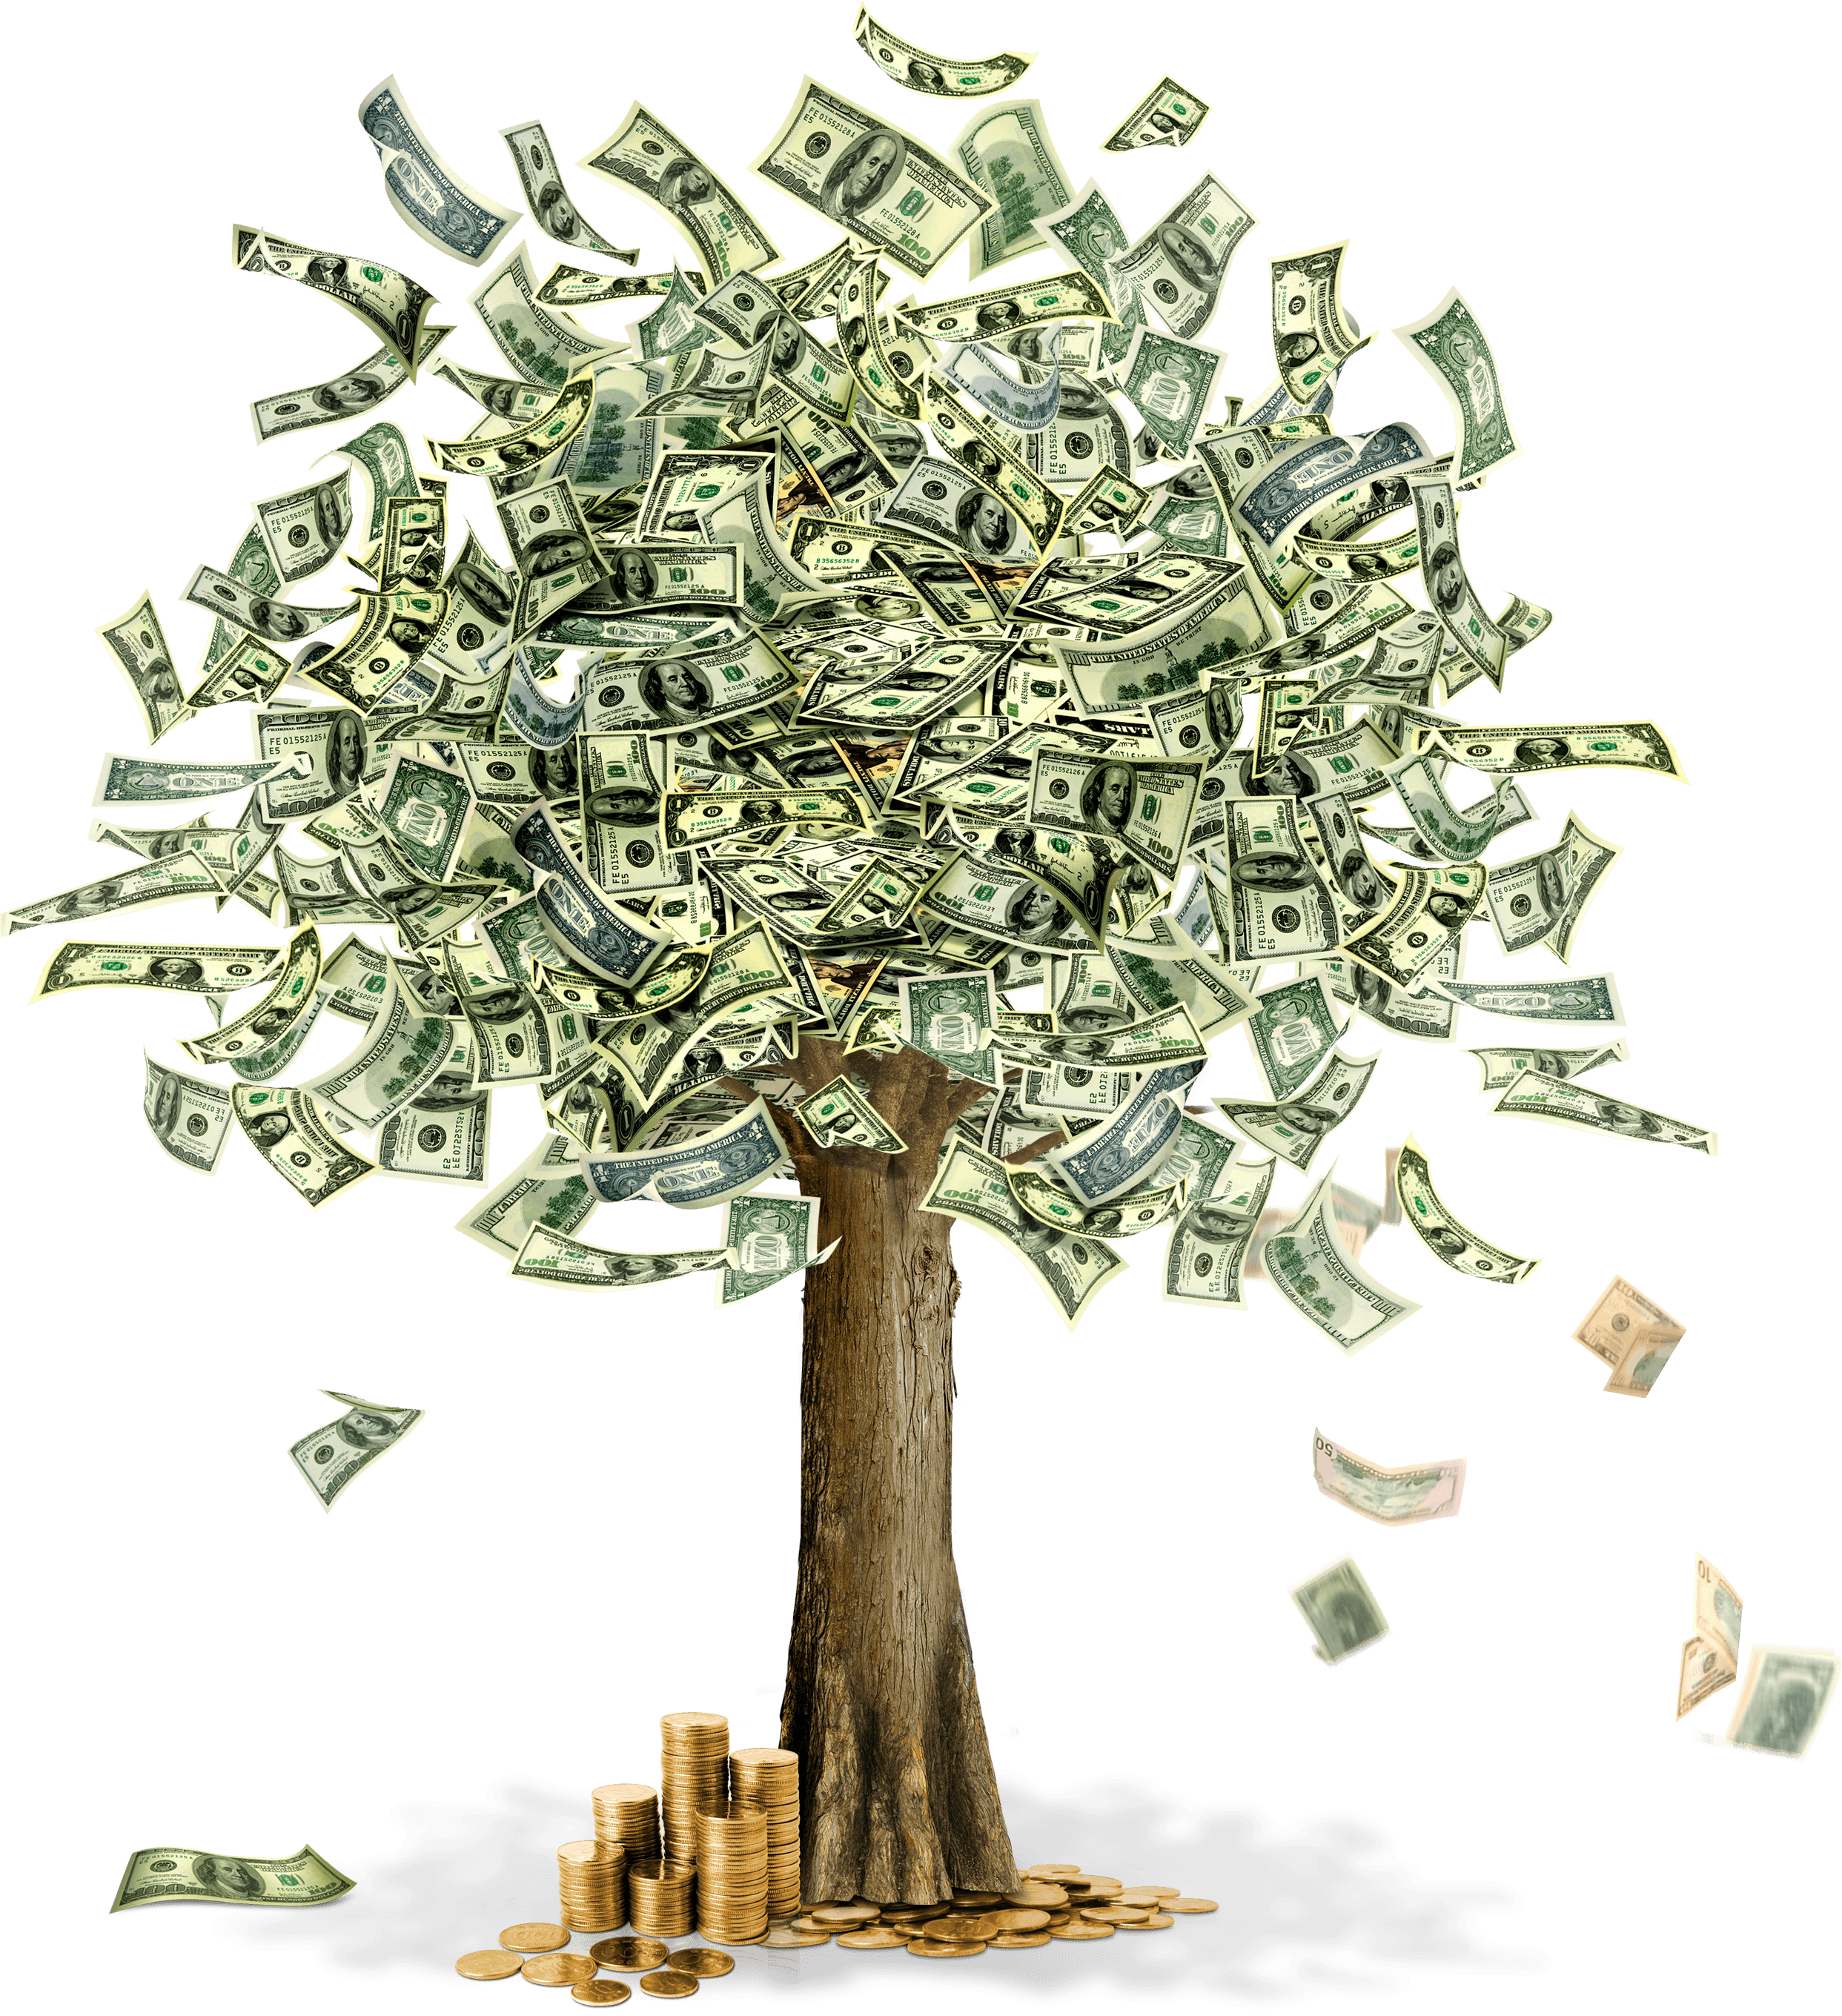 Money Moneytree Free HD Image PNG Image